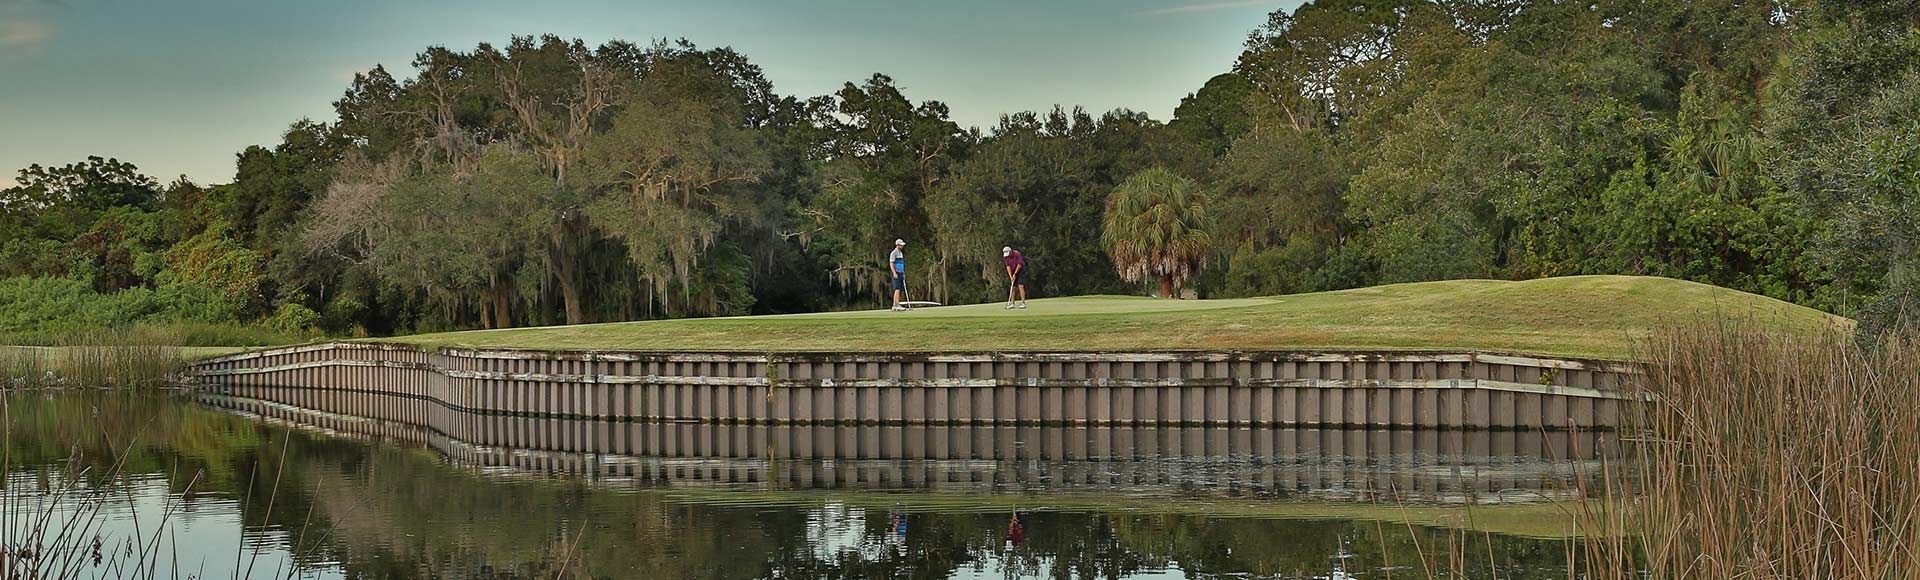 Two men are putting on the green. below is a pond with a retainment wall holding back the land. it s a nice day out and the background is filled with palm trees and oak trees. the sky is blue.